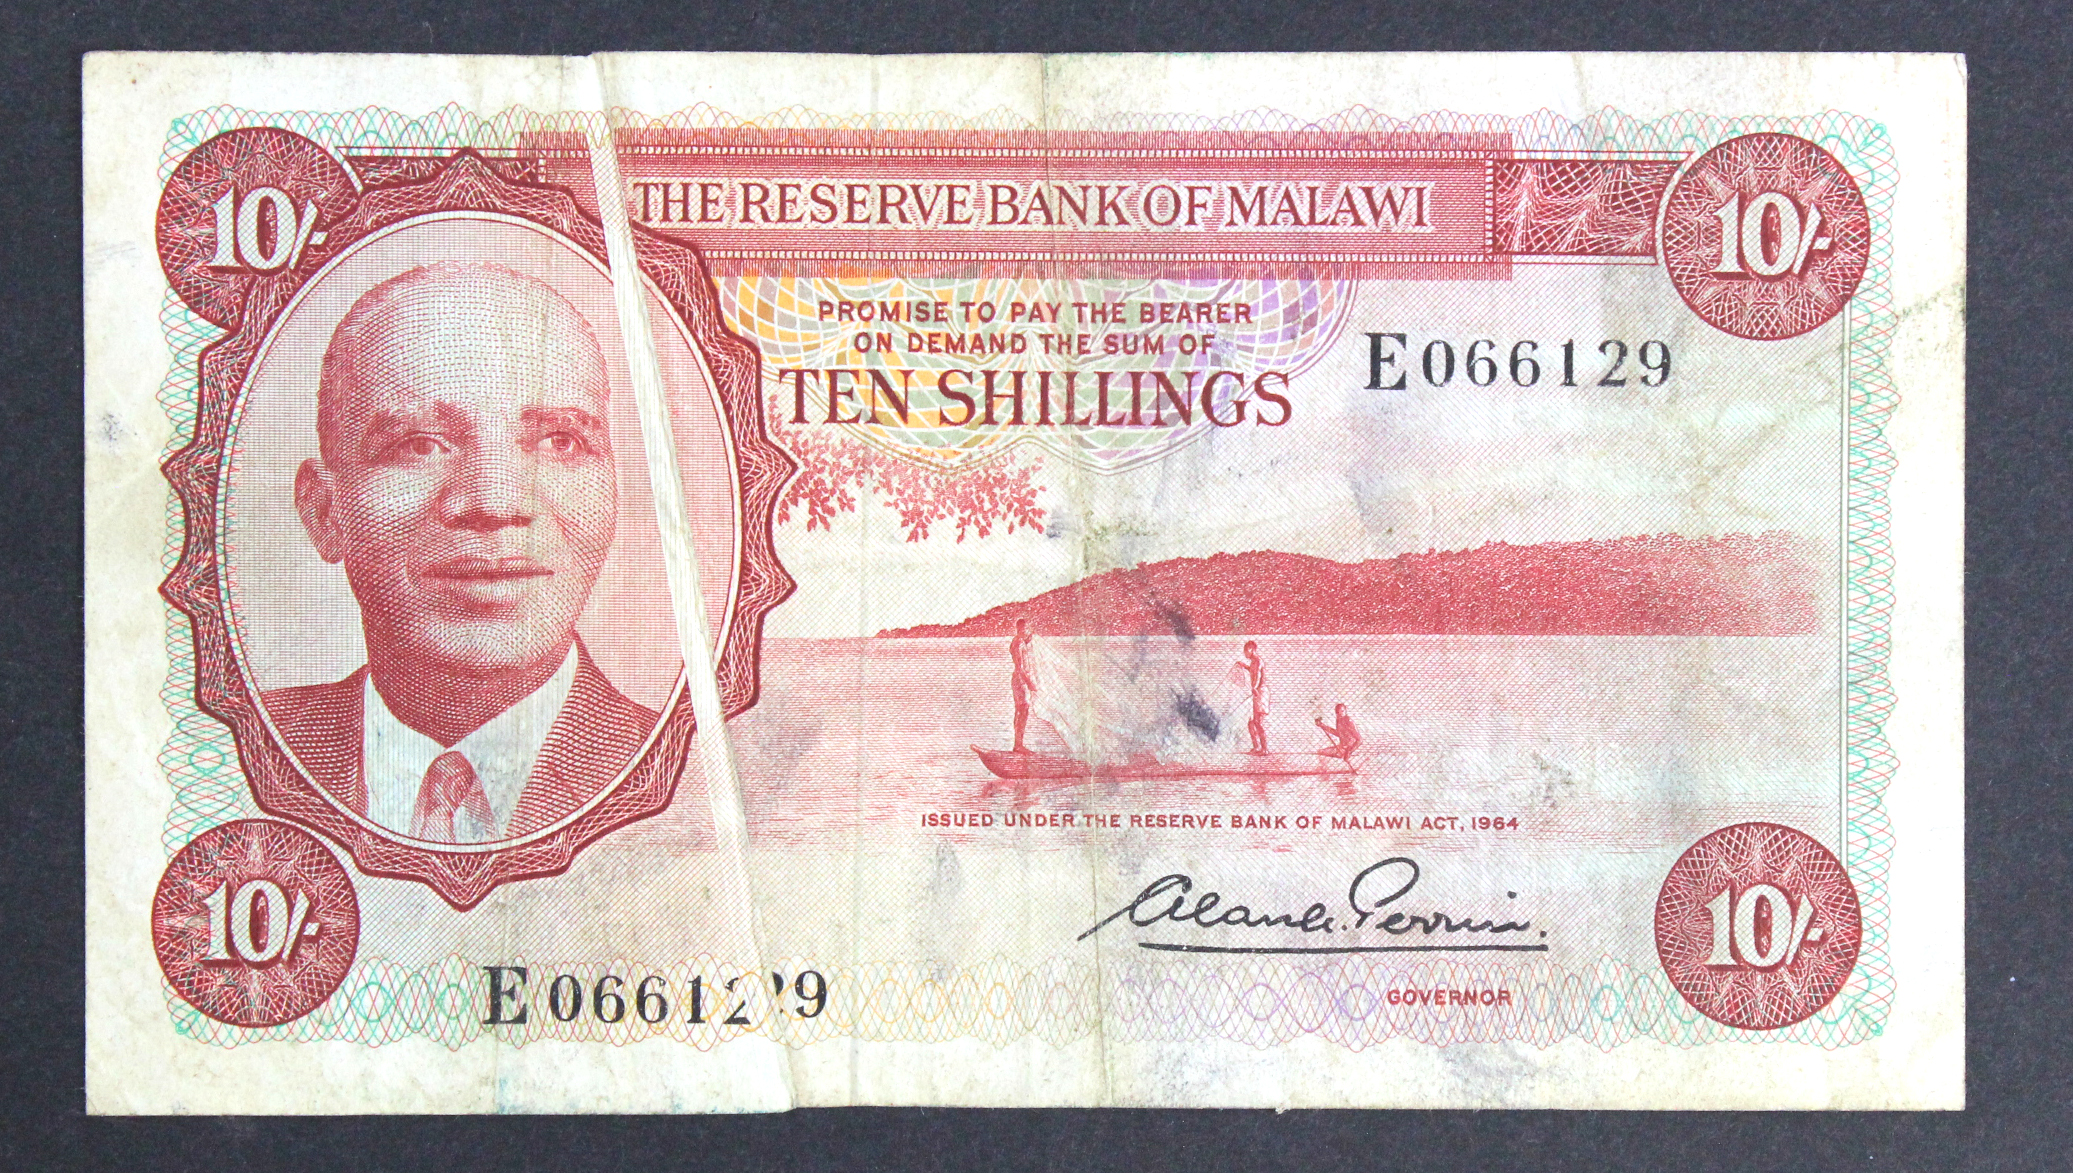 Malawi 10 Shillings ERROR note dated 1964, a strong GUTTER FOLD error, rare first issue signed